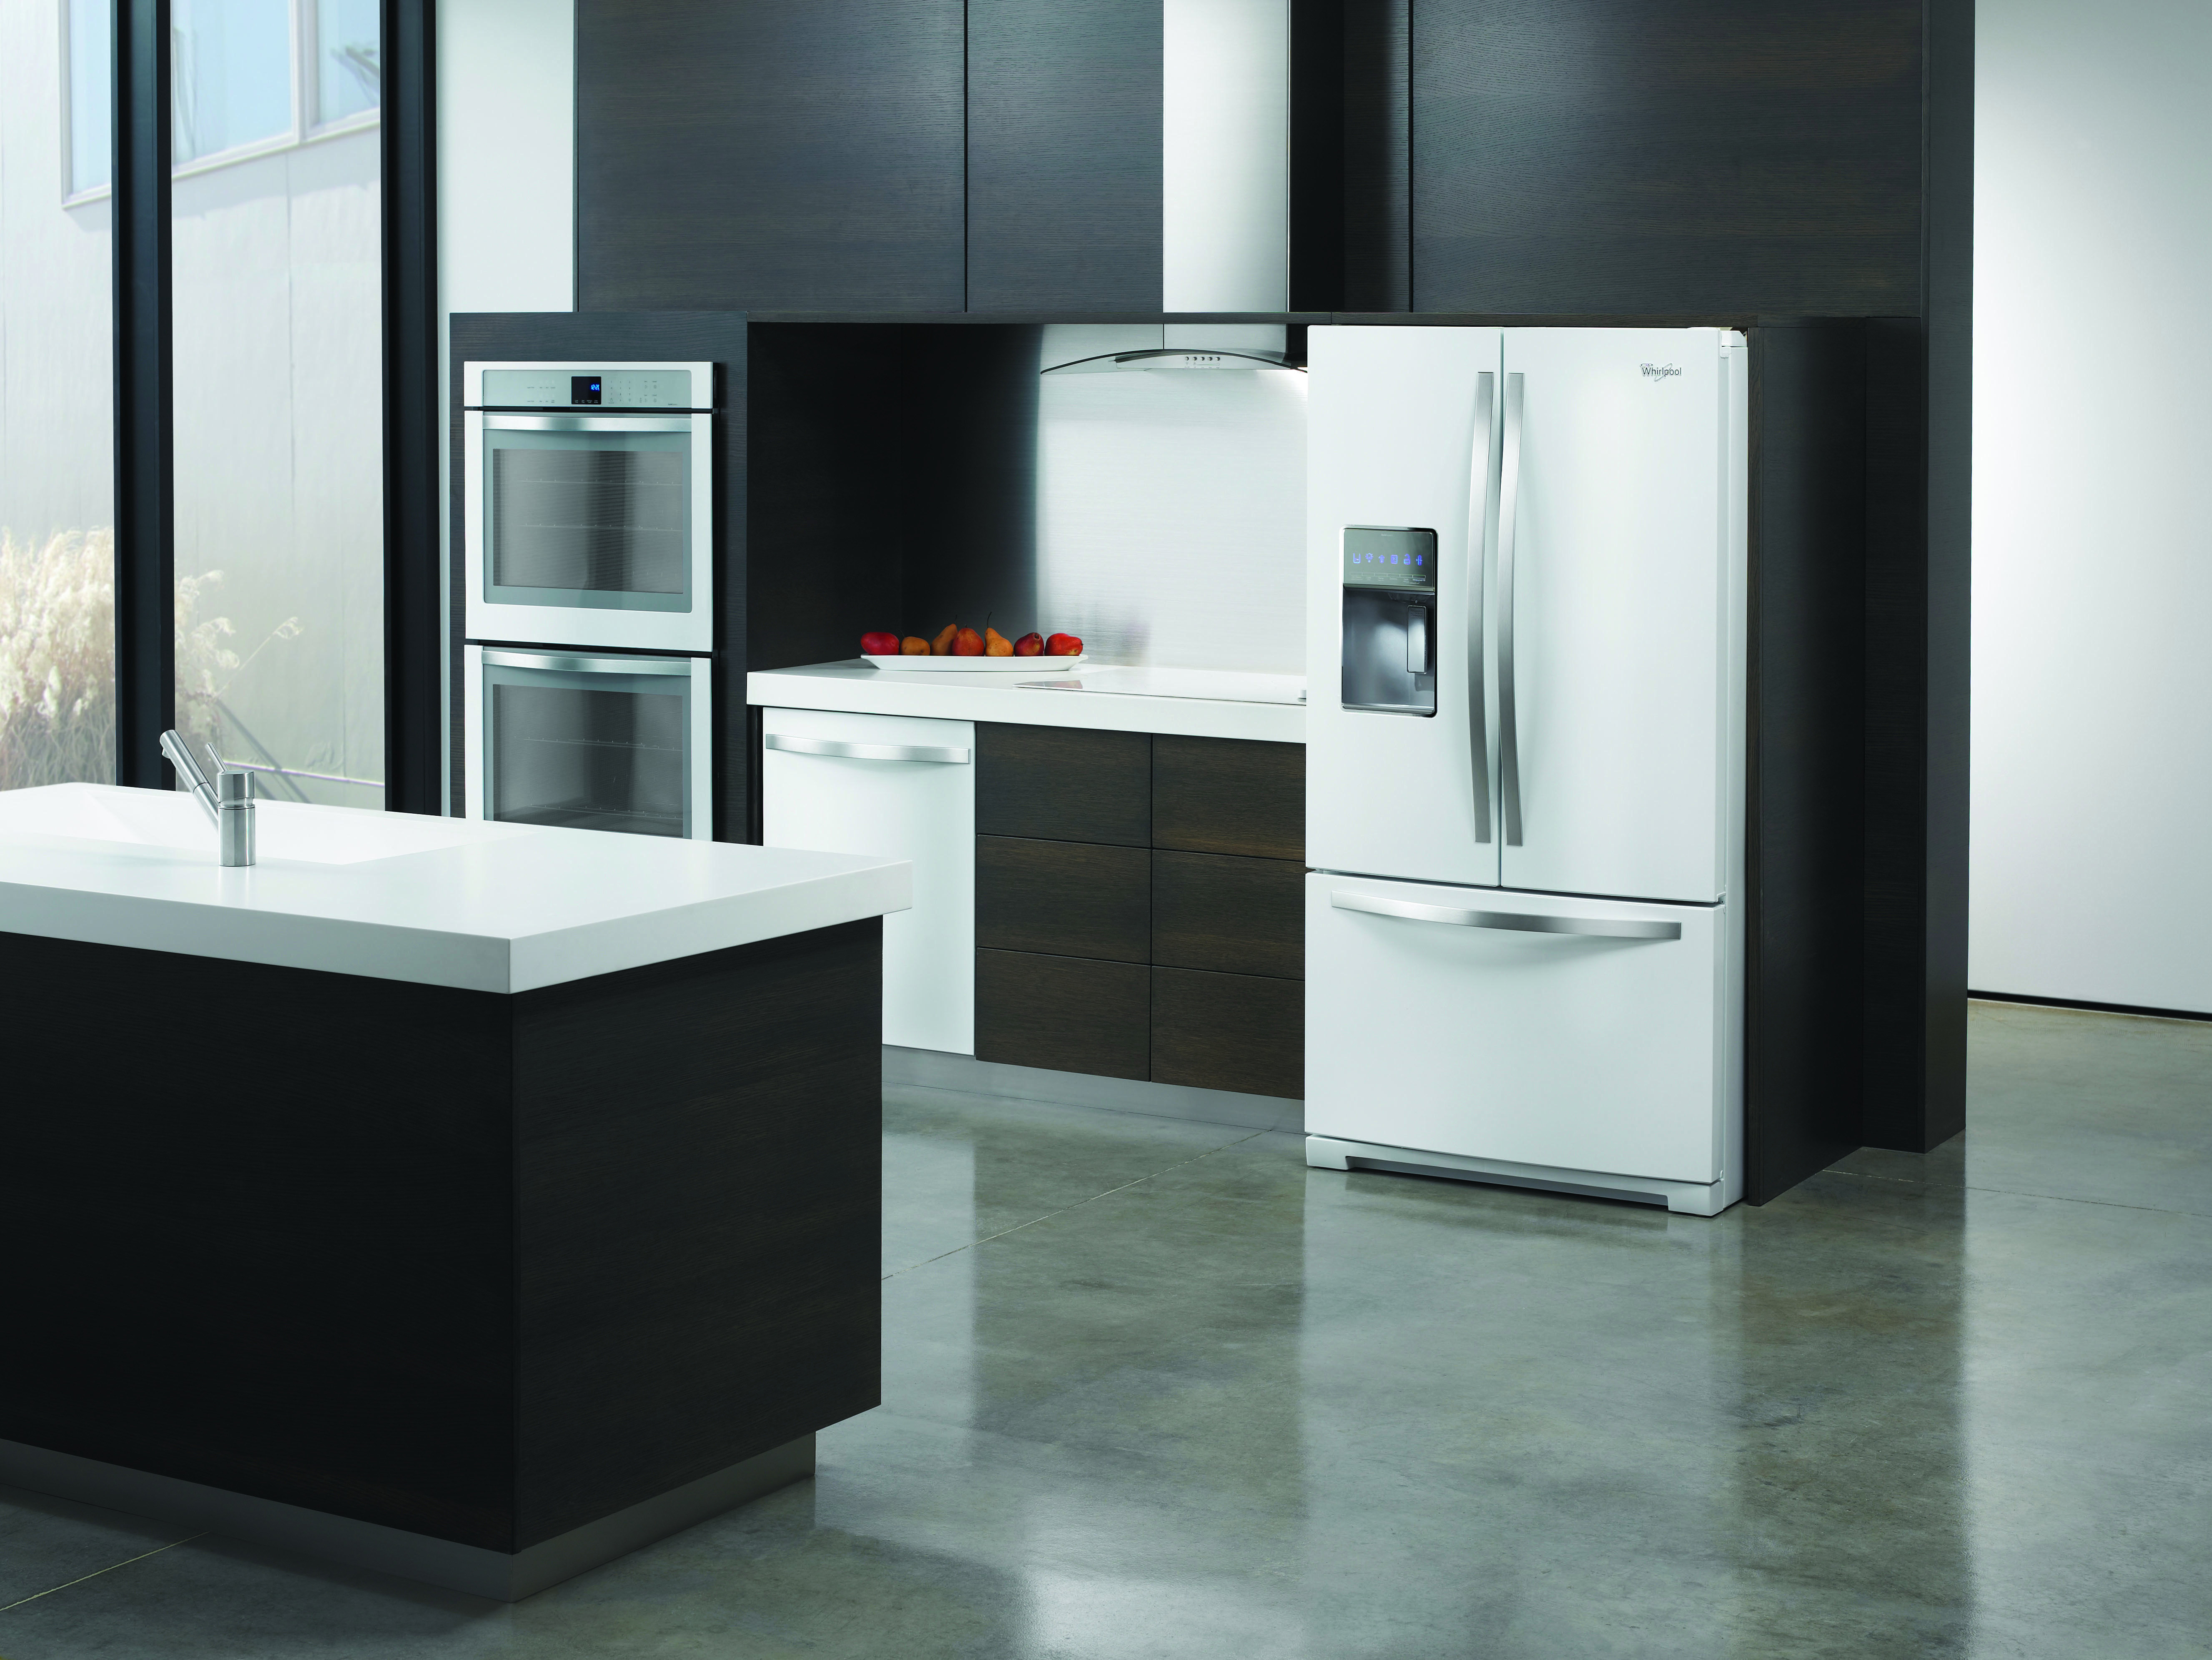 Whirlpool white ice counter depth french door - Whirlpool Counter Depth Side By Side Refrigerator In White Ice